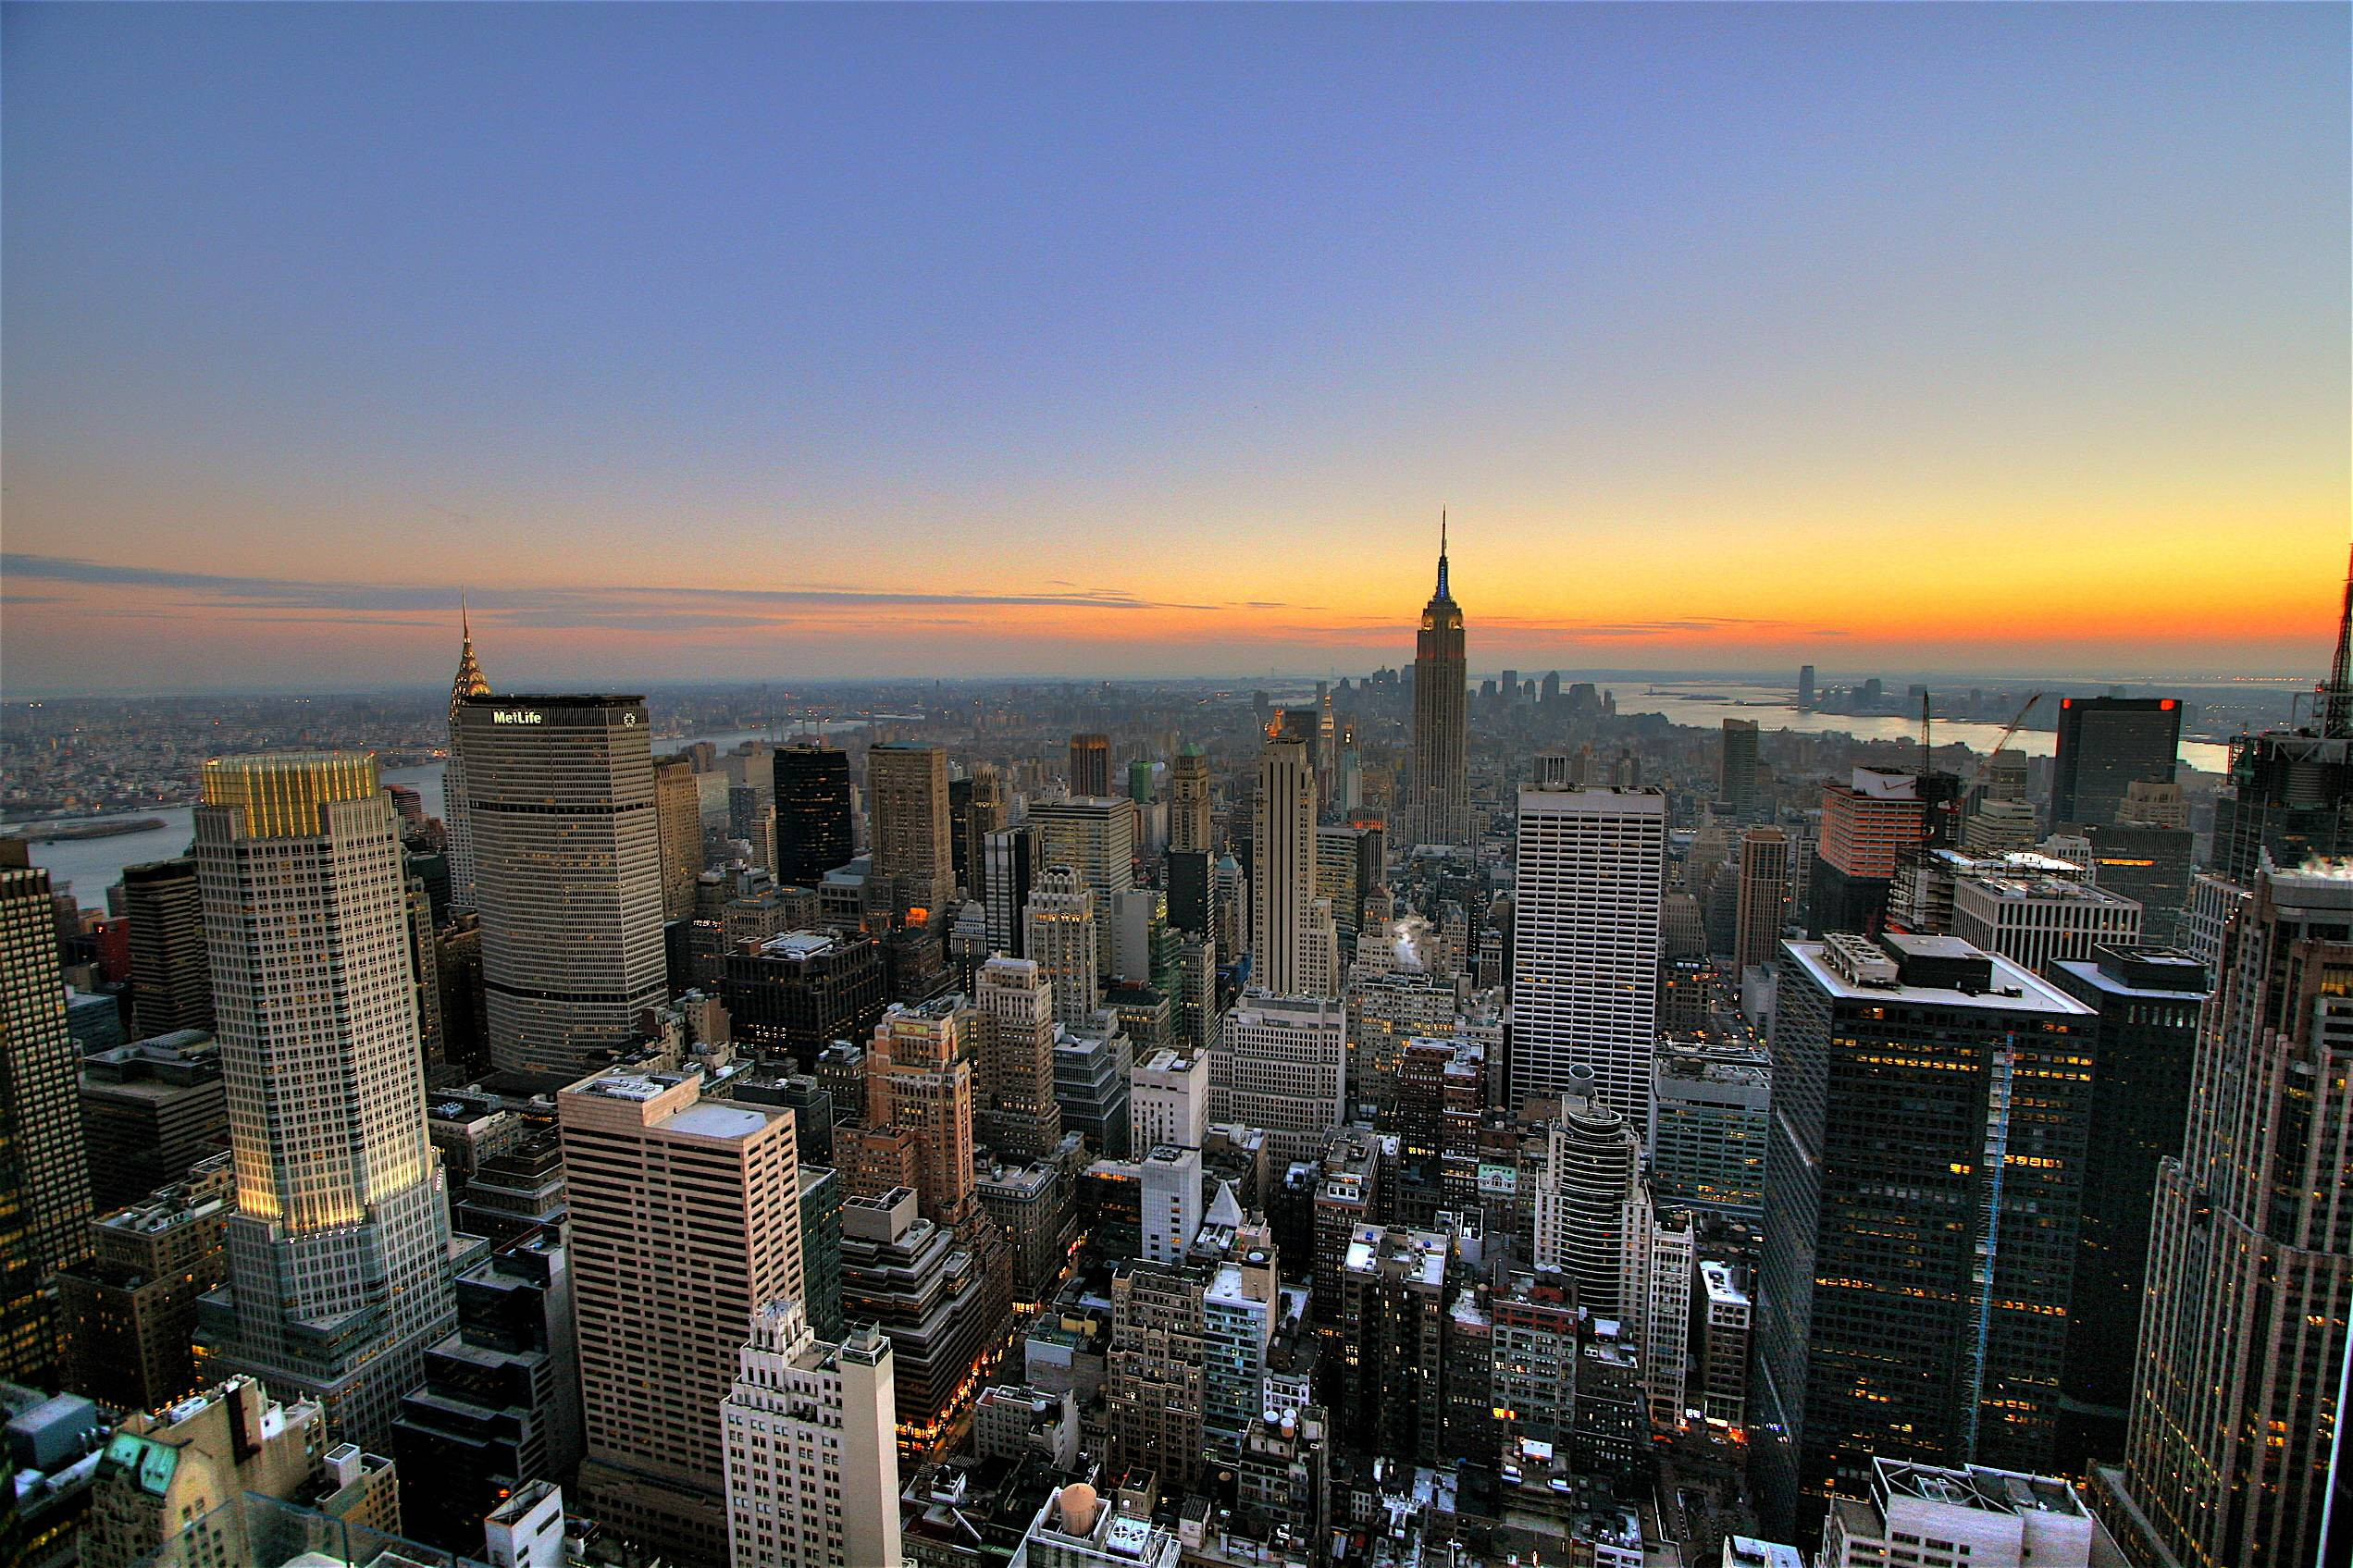 2543x1695 Black and White Nyc Skyline Wallpaper Fantastic New York Skyline Wallpapers  Wallpaper Cave